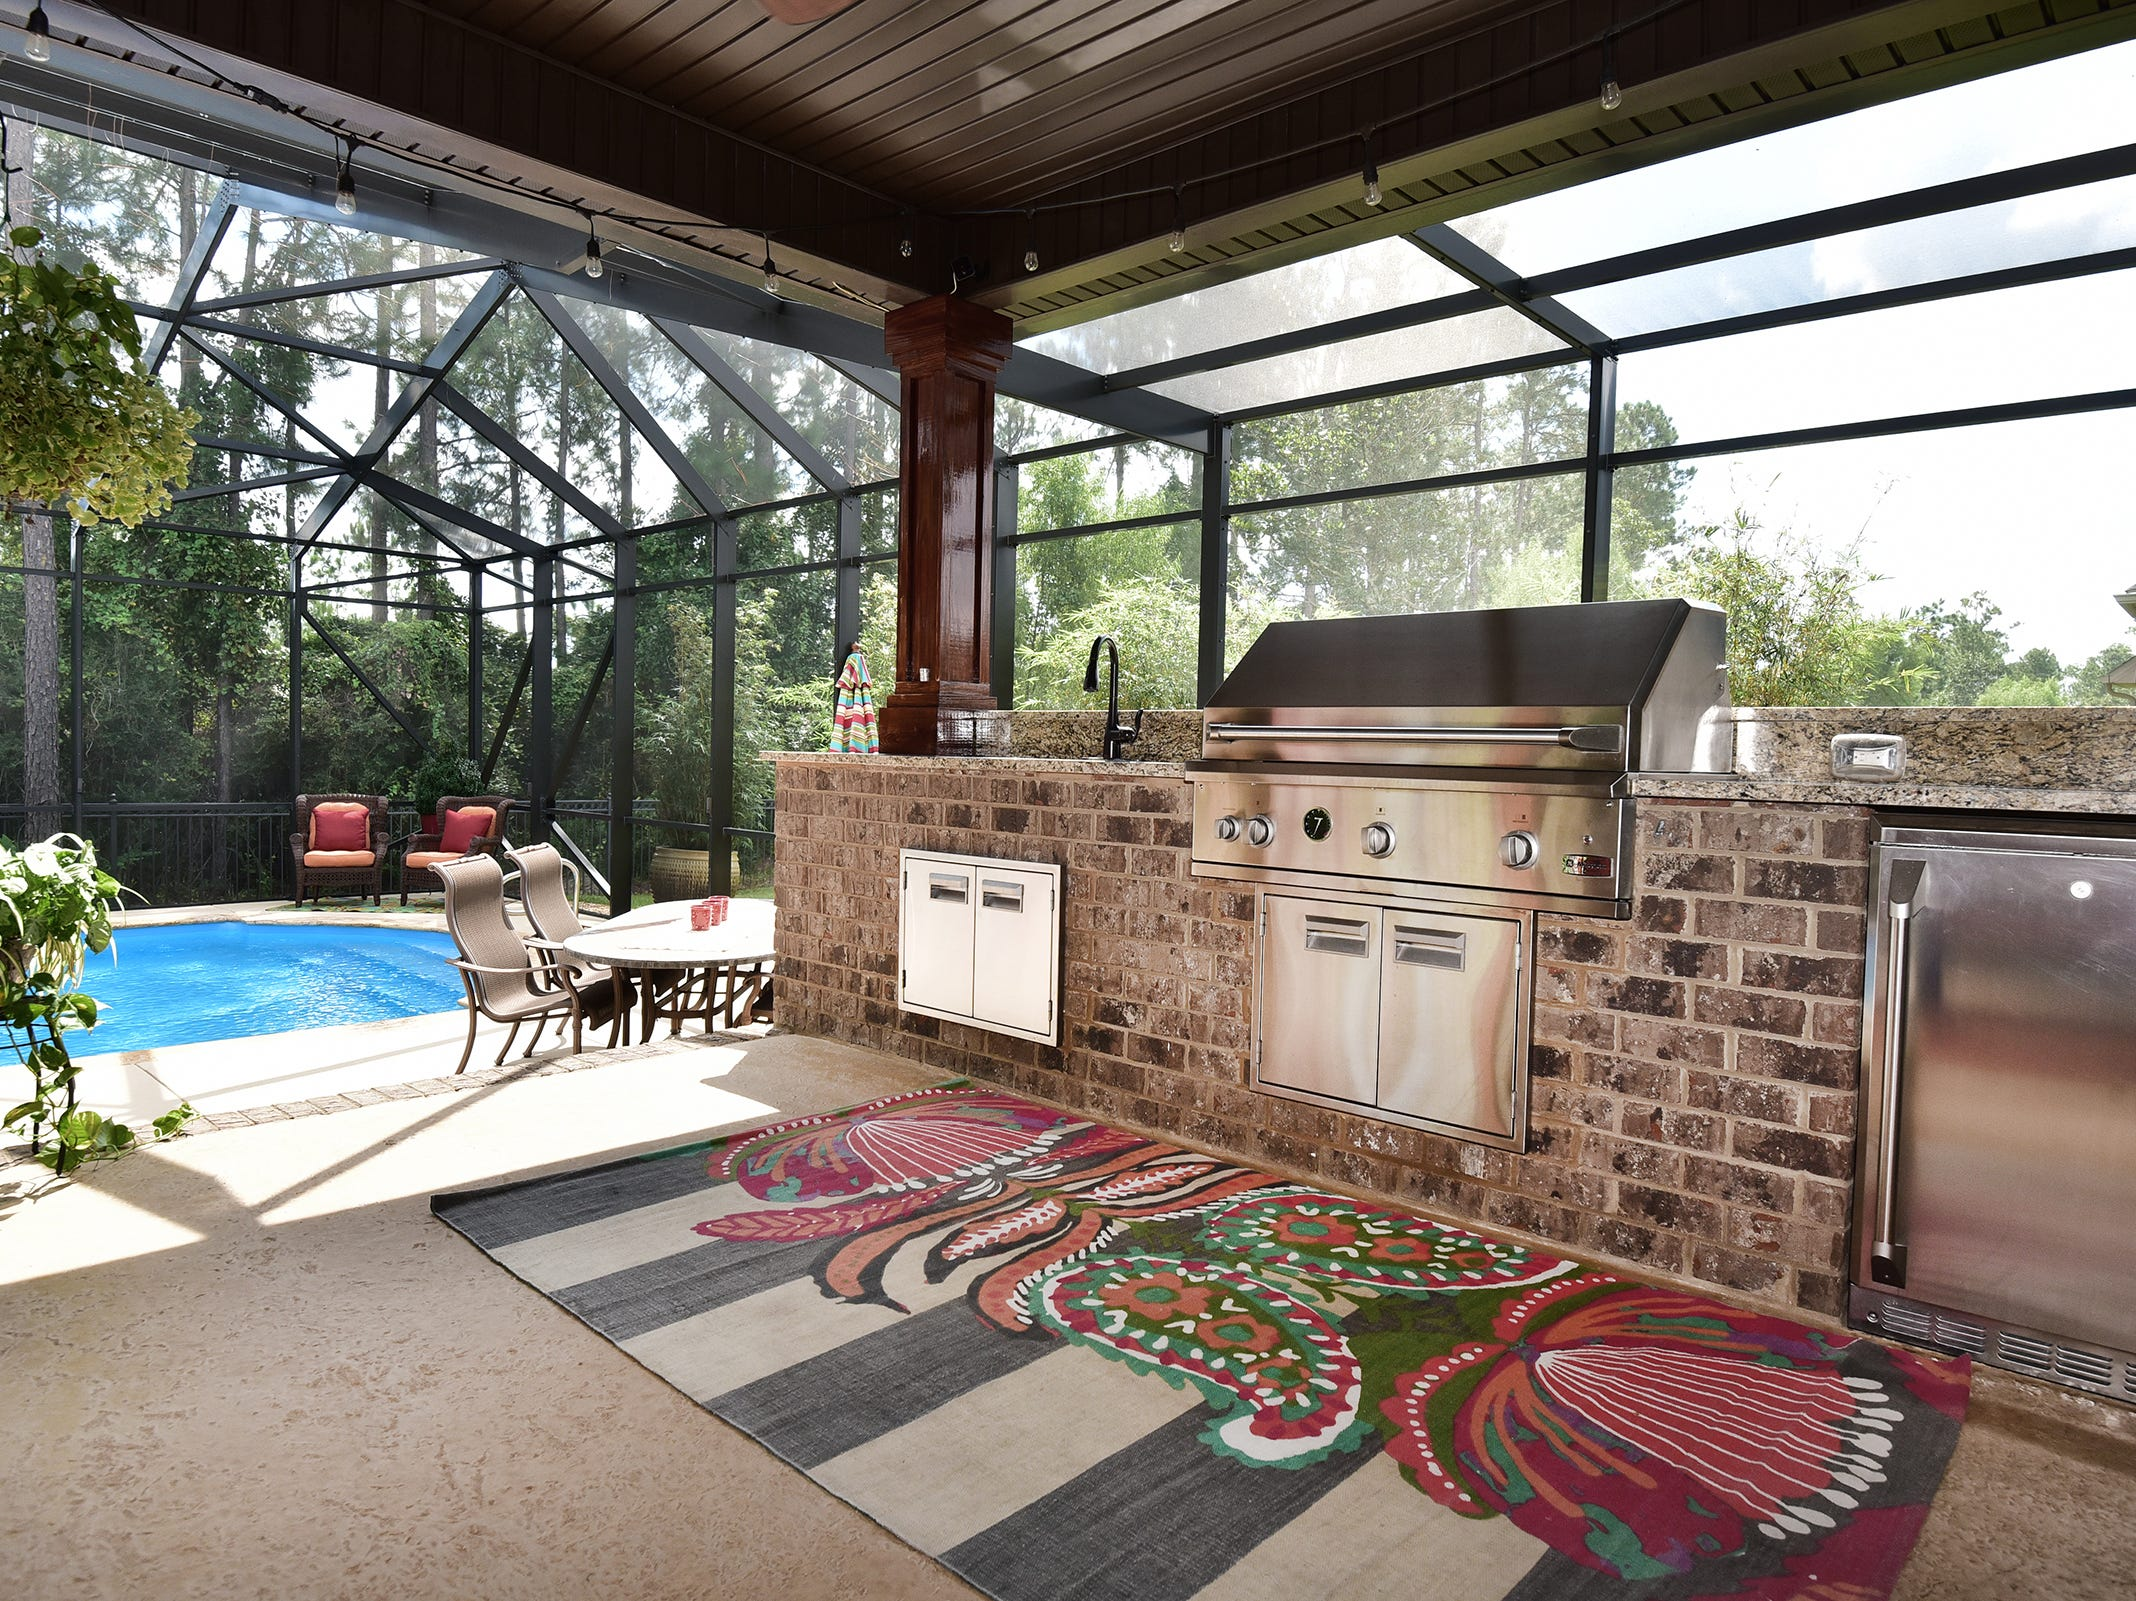 8811 Salt Grass Drive, the buil-in outdoor kitchen is perfect for meals al fresco.